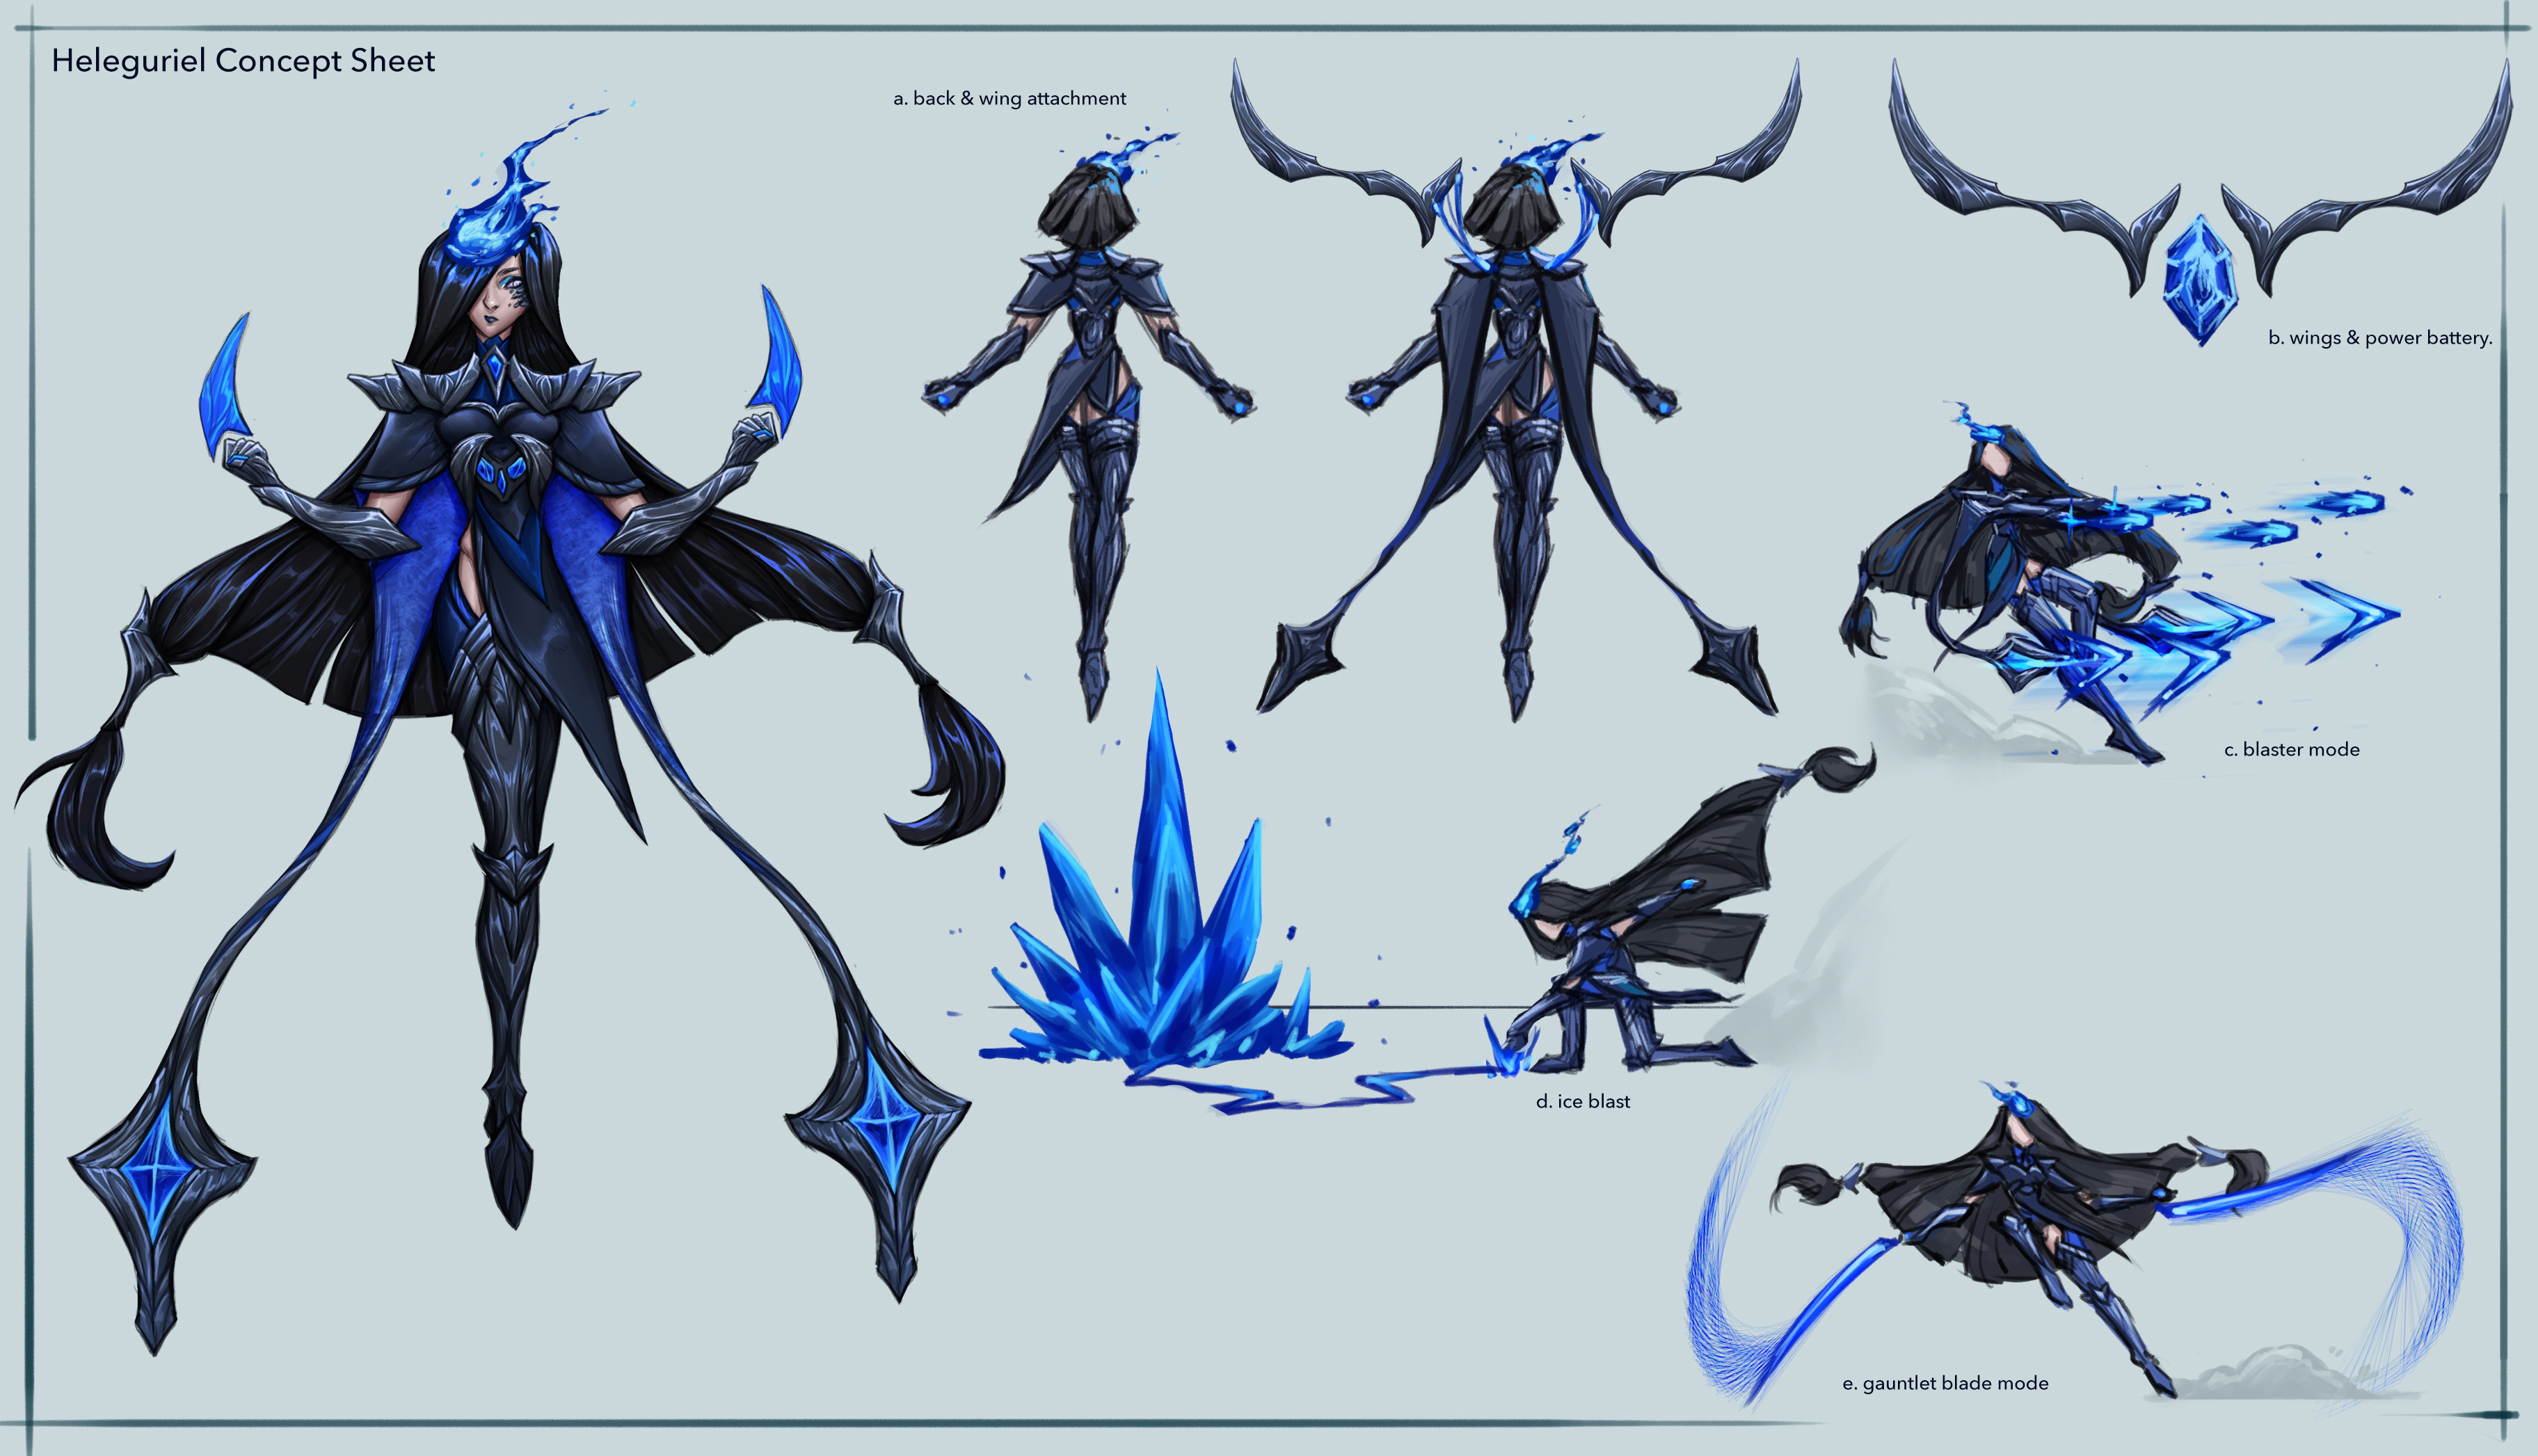 Heleguriel [2/3] Her concept sheet complete with back view and poses